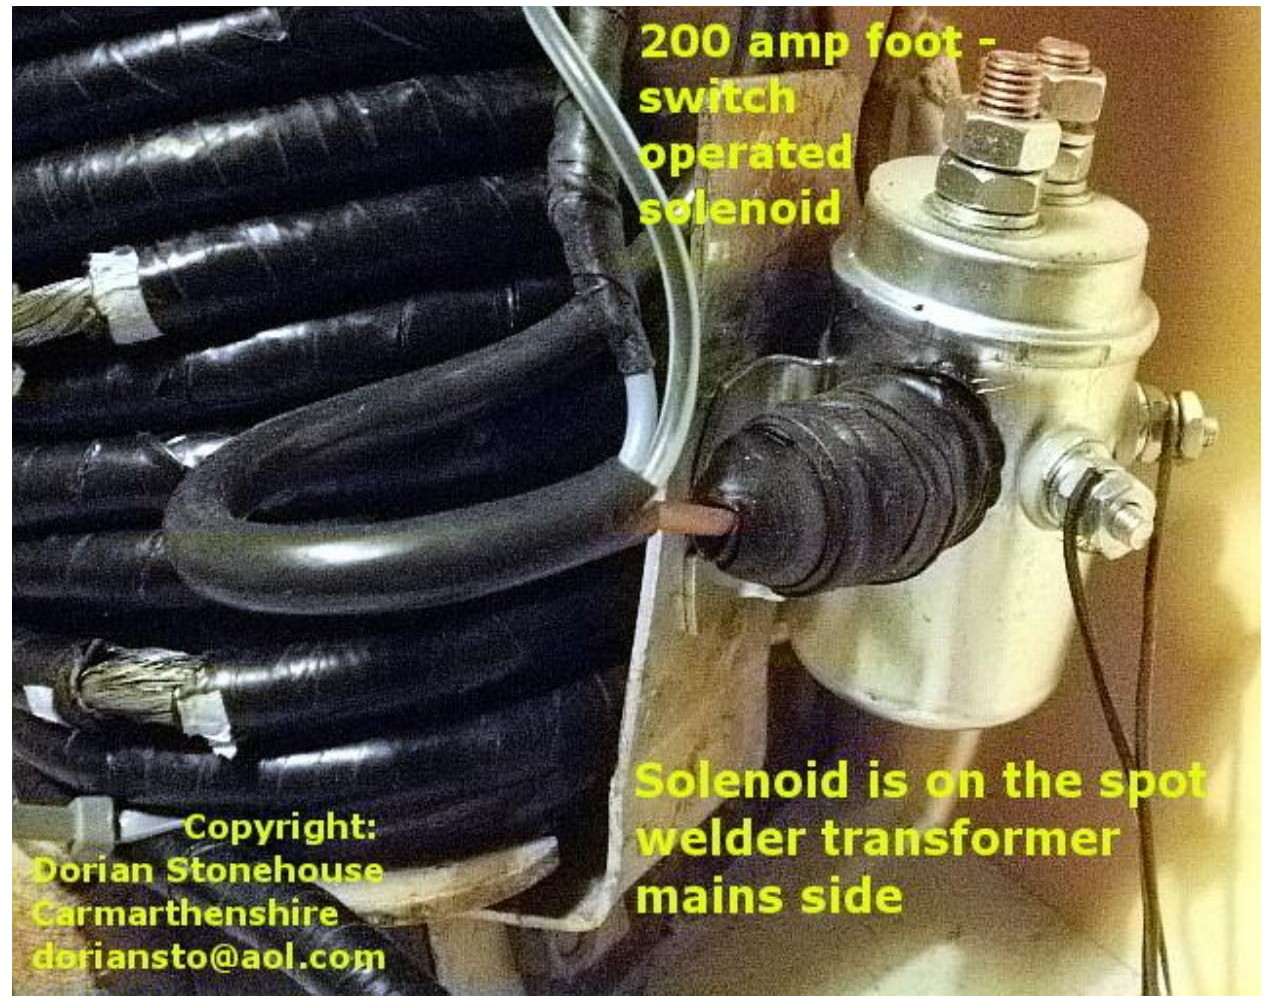 heavy duty solenoid switch, with foot pedal used